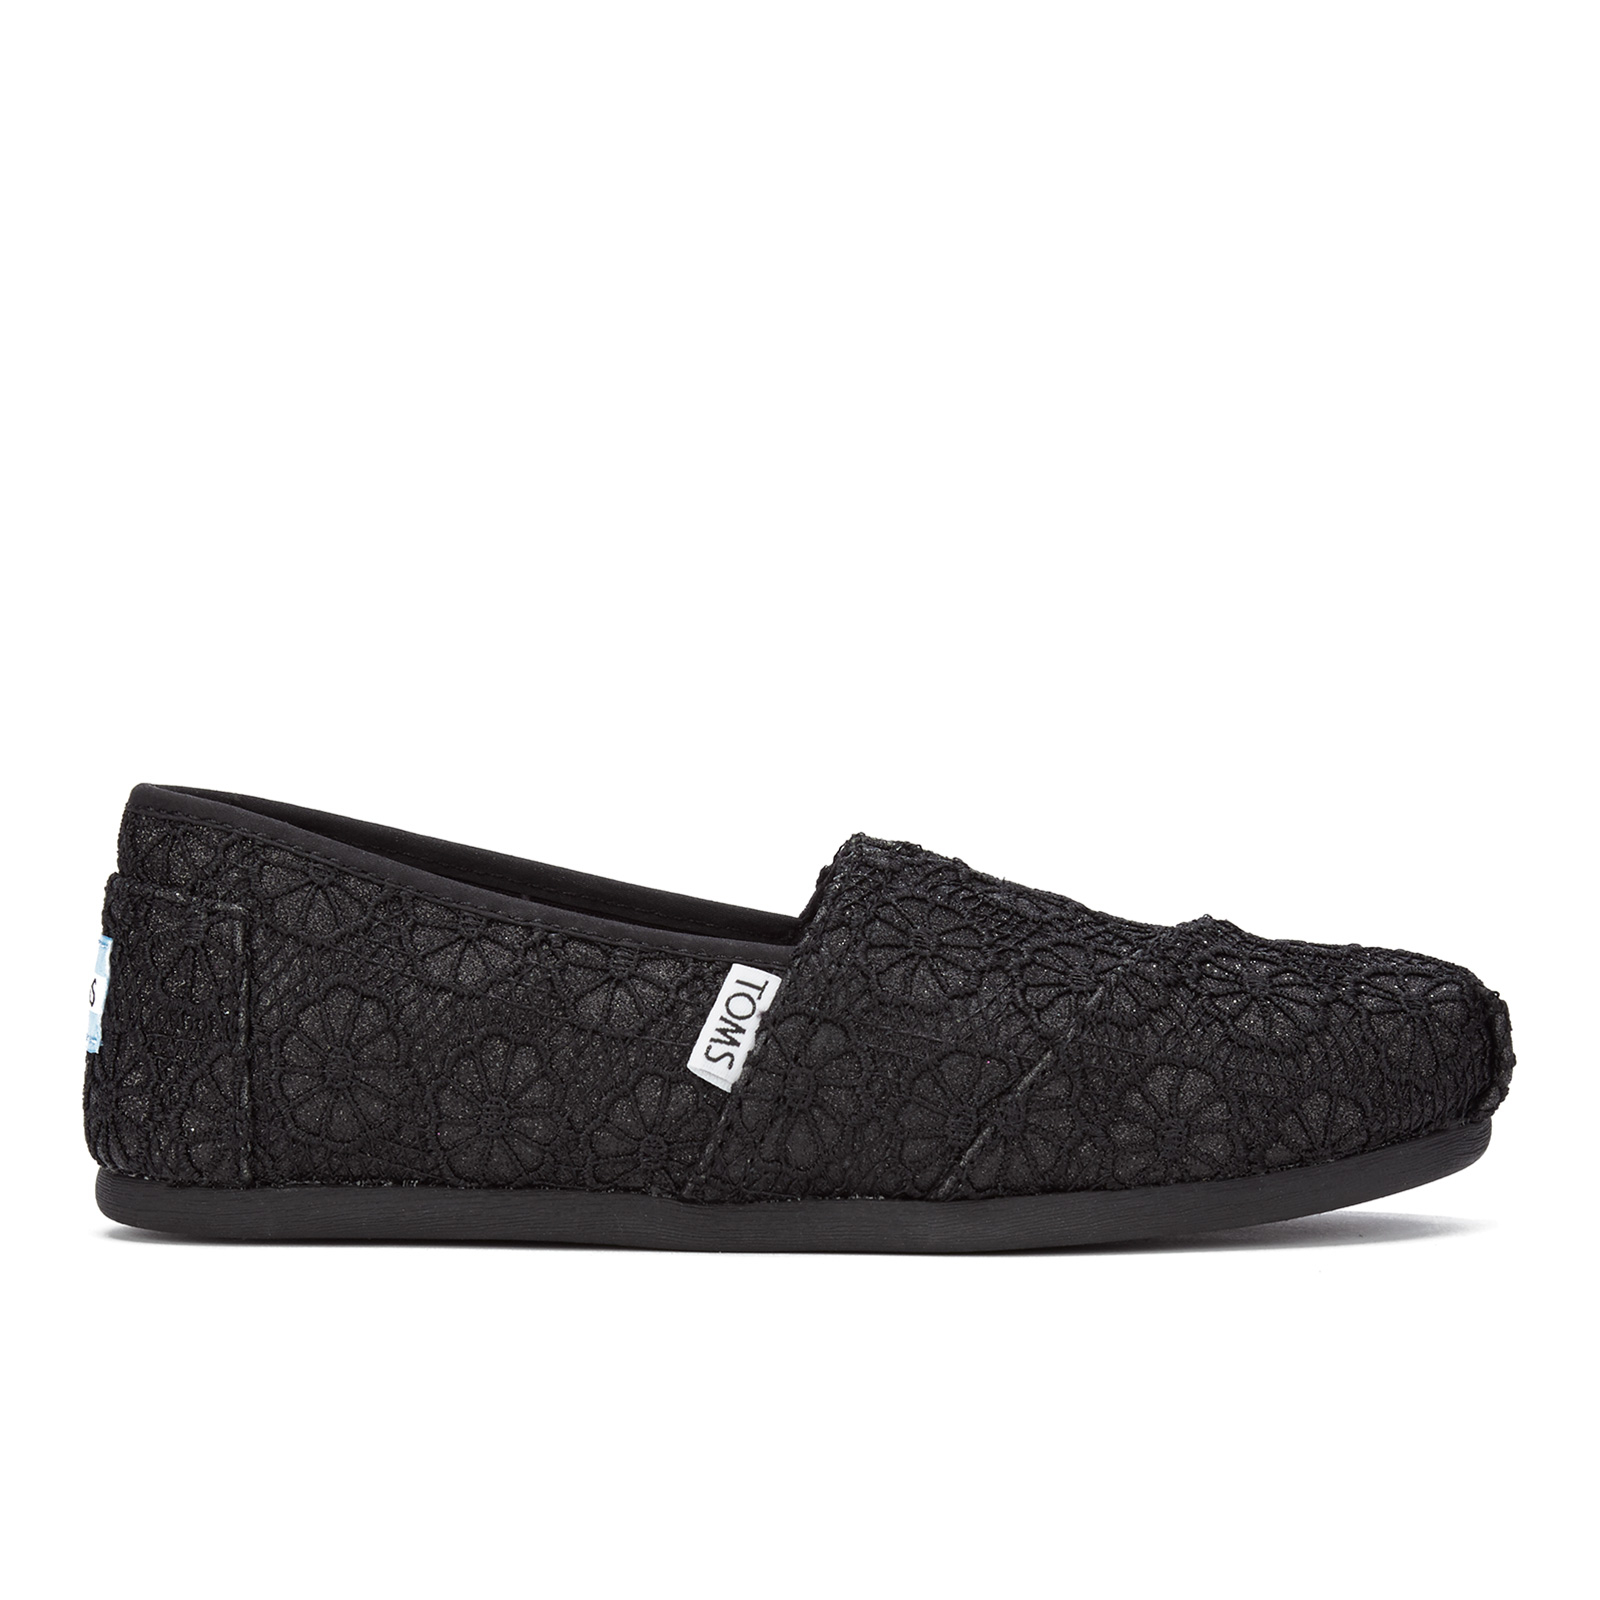 92e3cc5f9658 TOMS Women's Seasonal Classics Slip-On Pumps - Black Crochet Glitter Womens  Footwear | TheHut.com